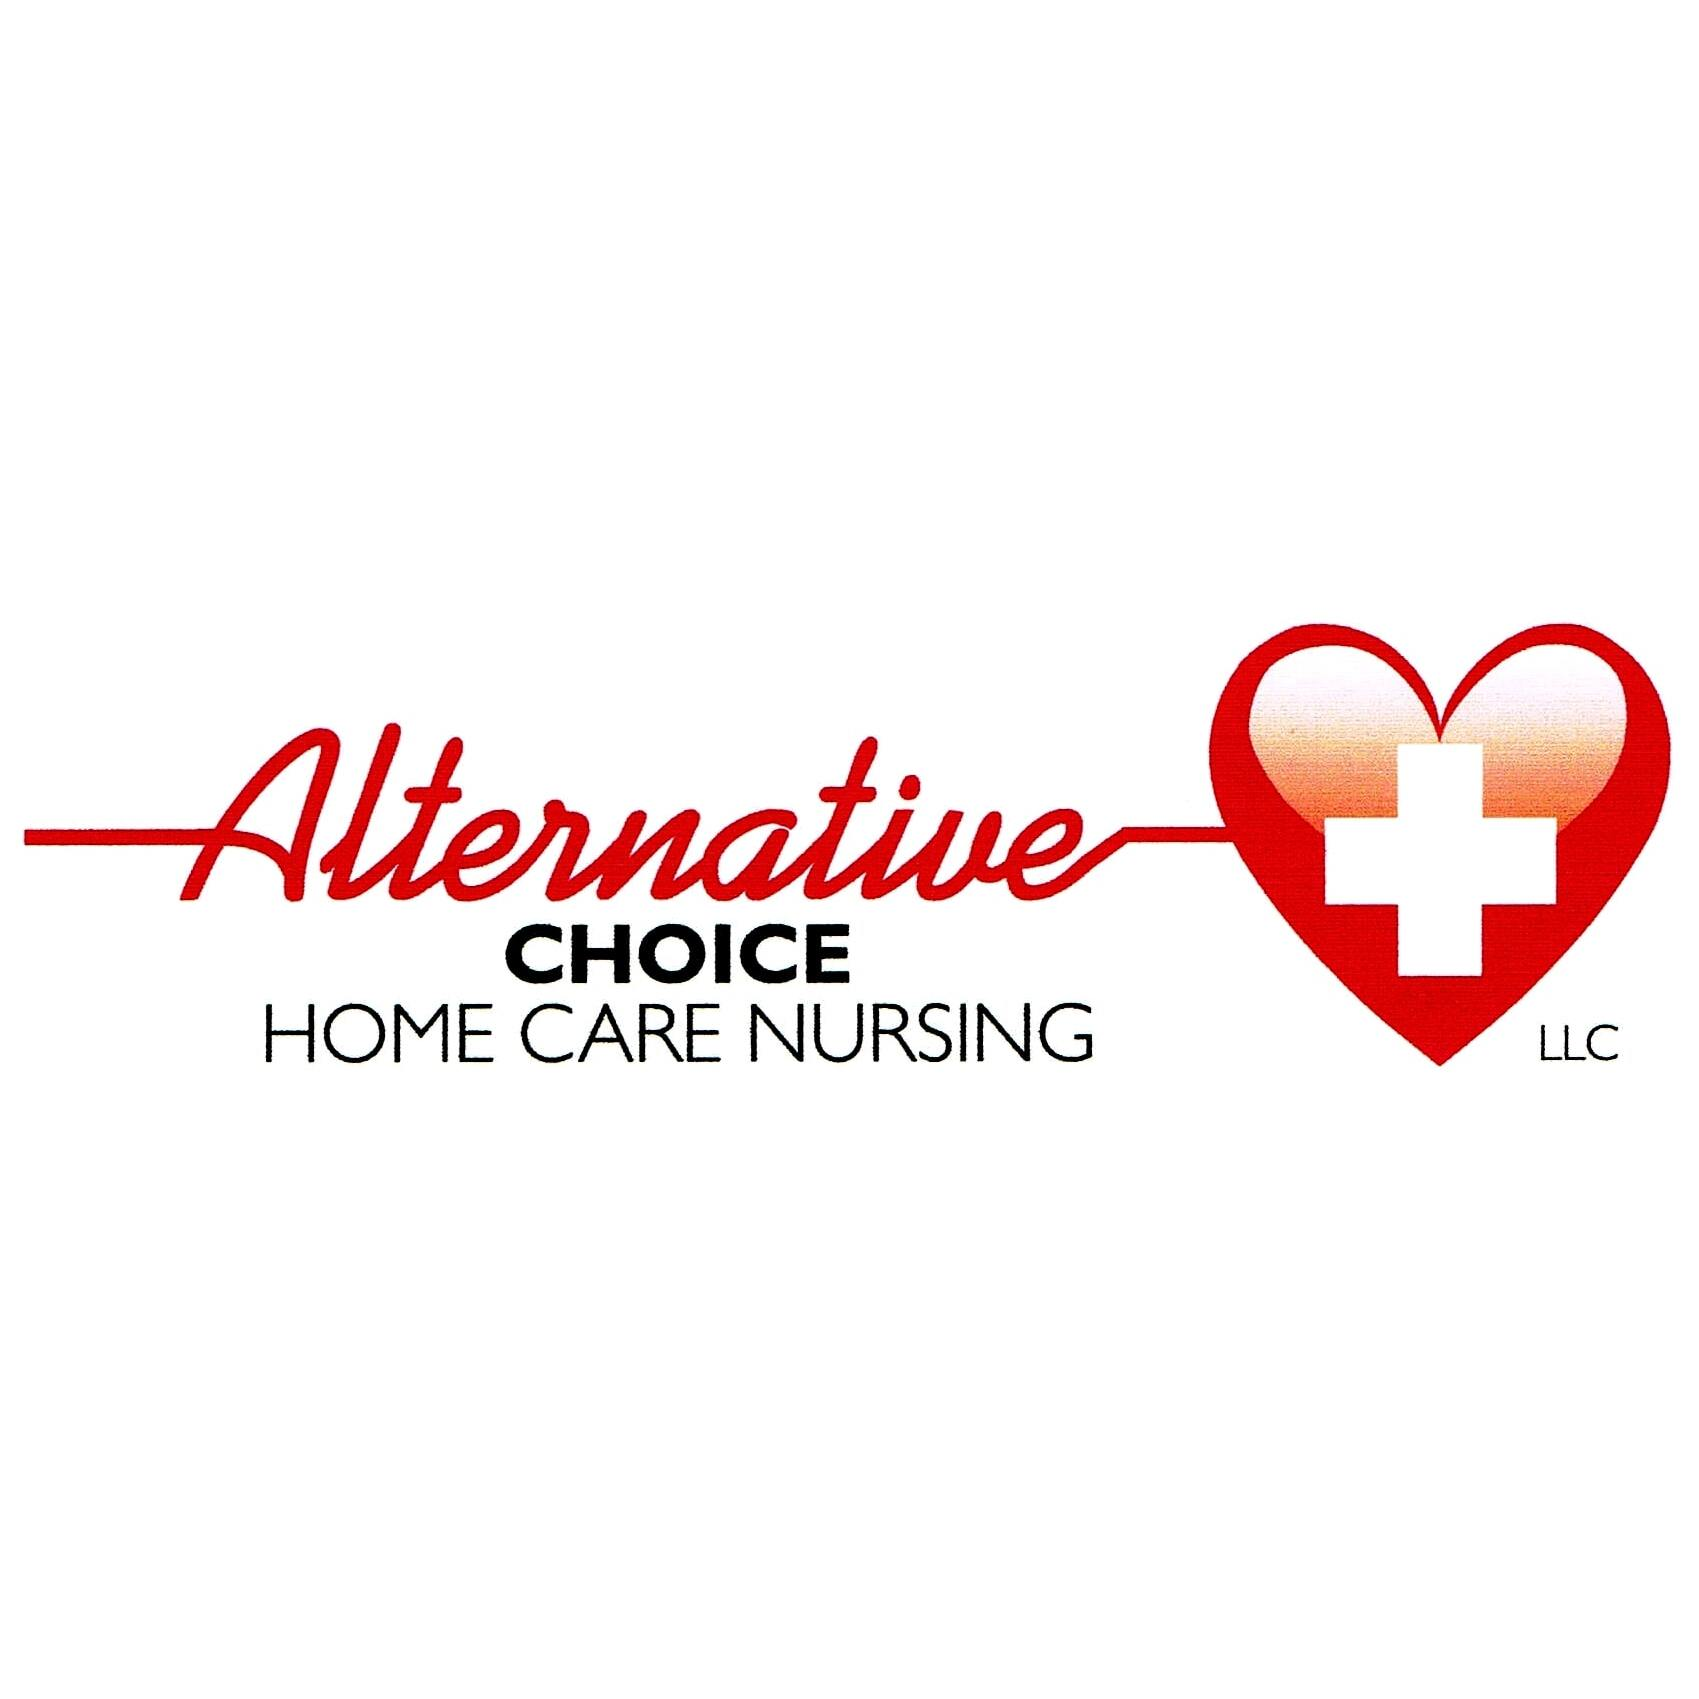 Alternative Choice Home Care Nursing LLC